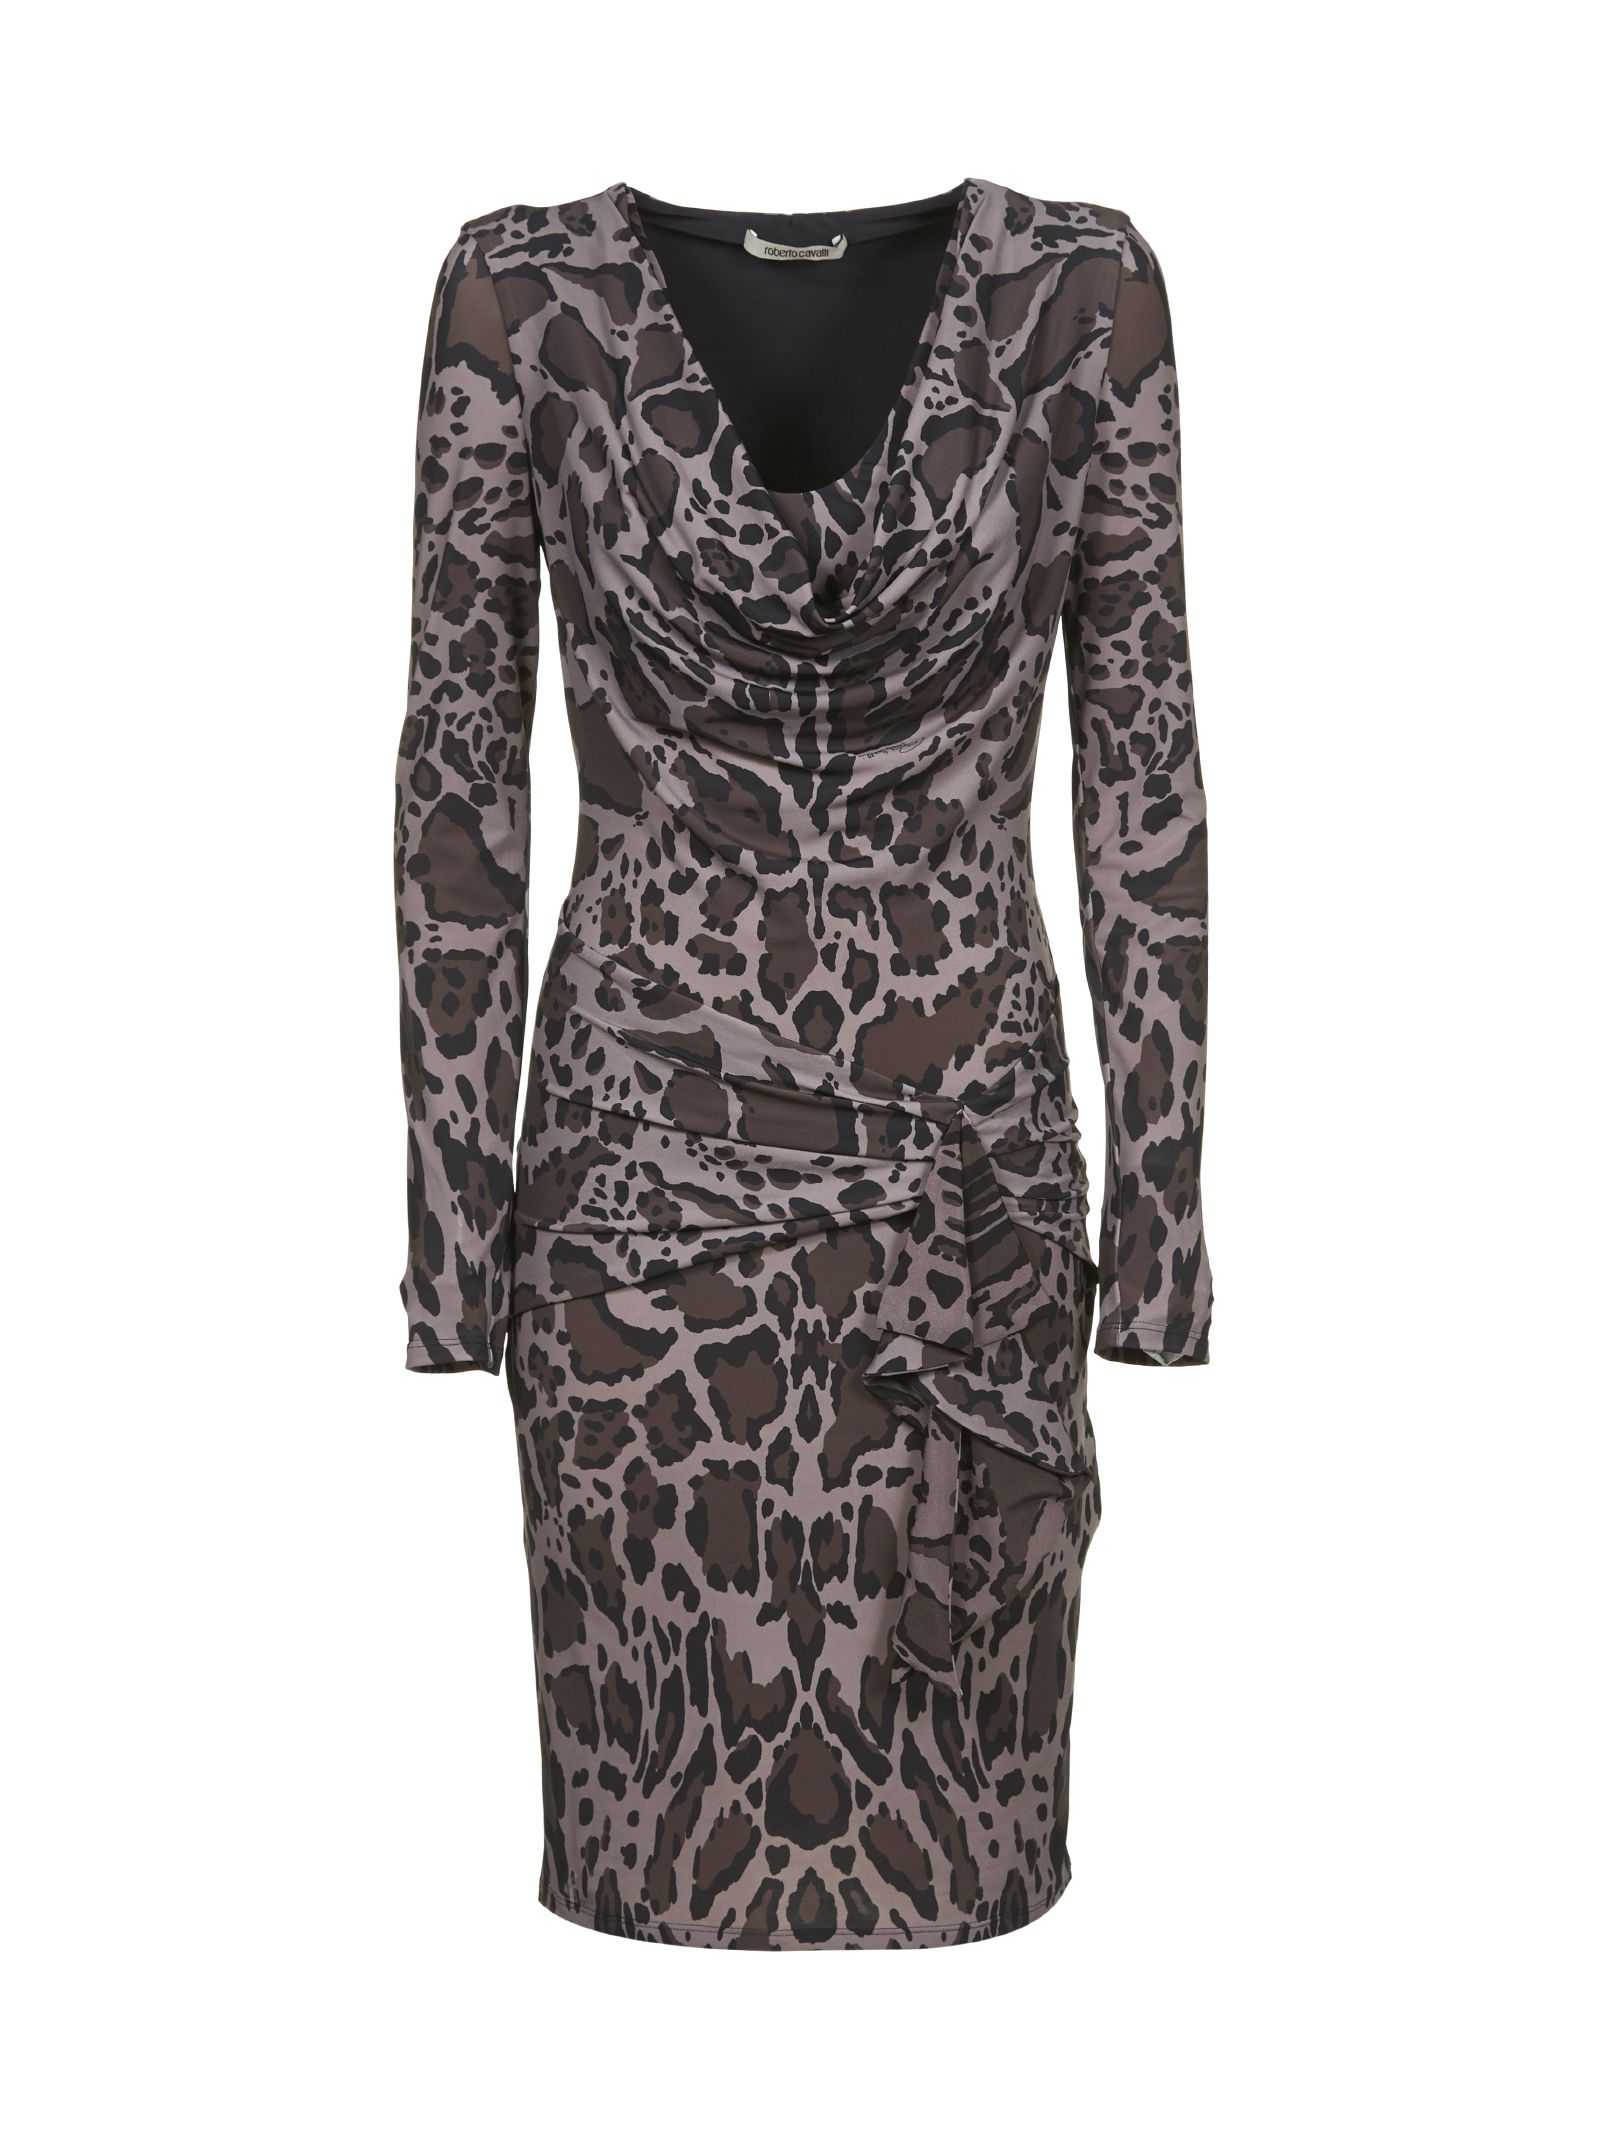 Roberto Cavalli Ruched Leopard Dress